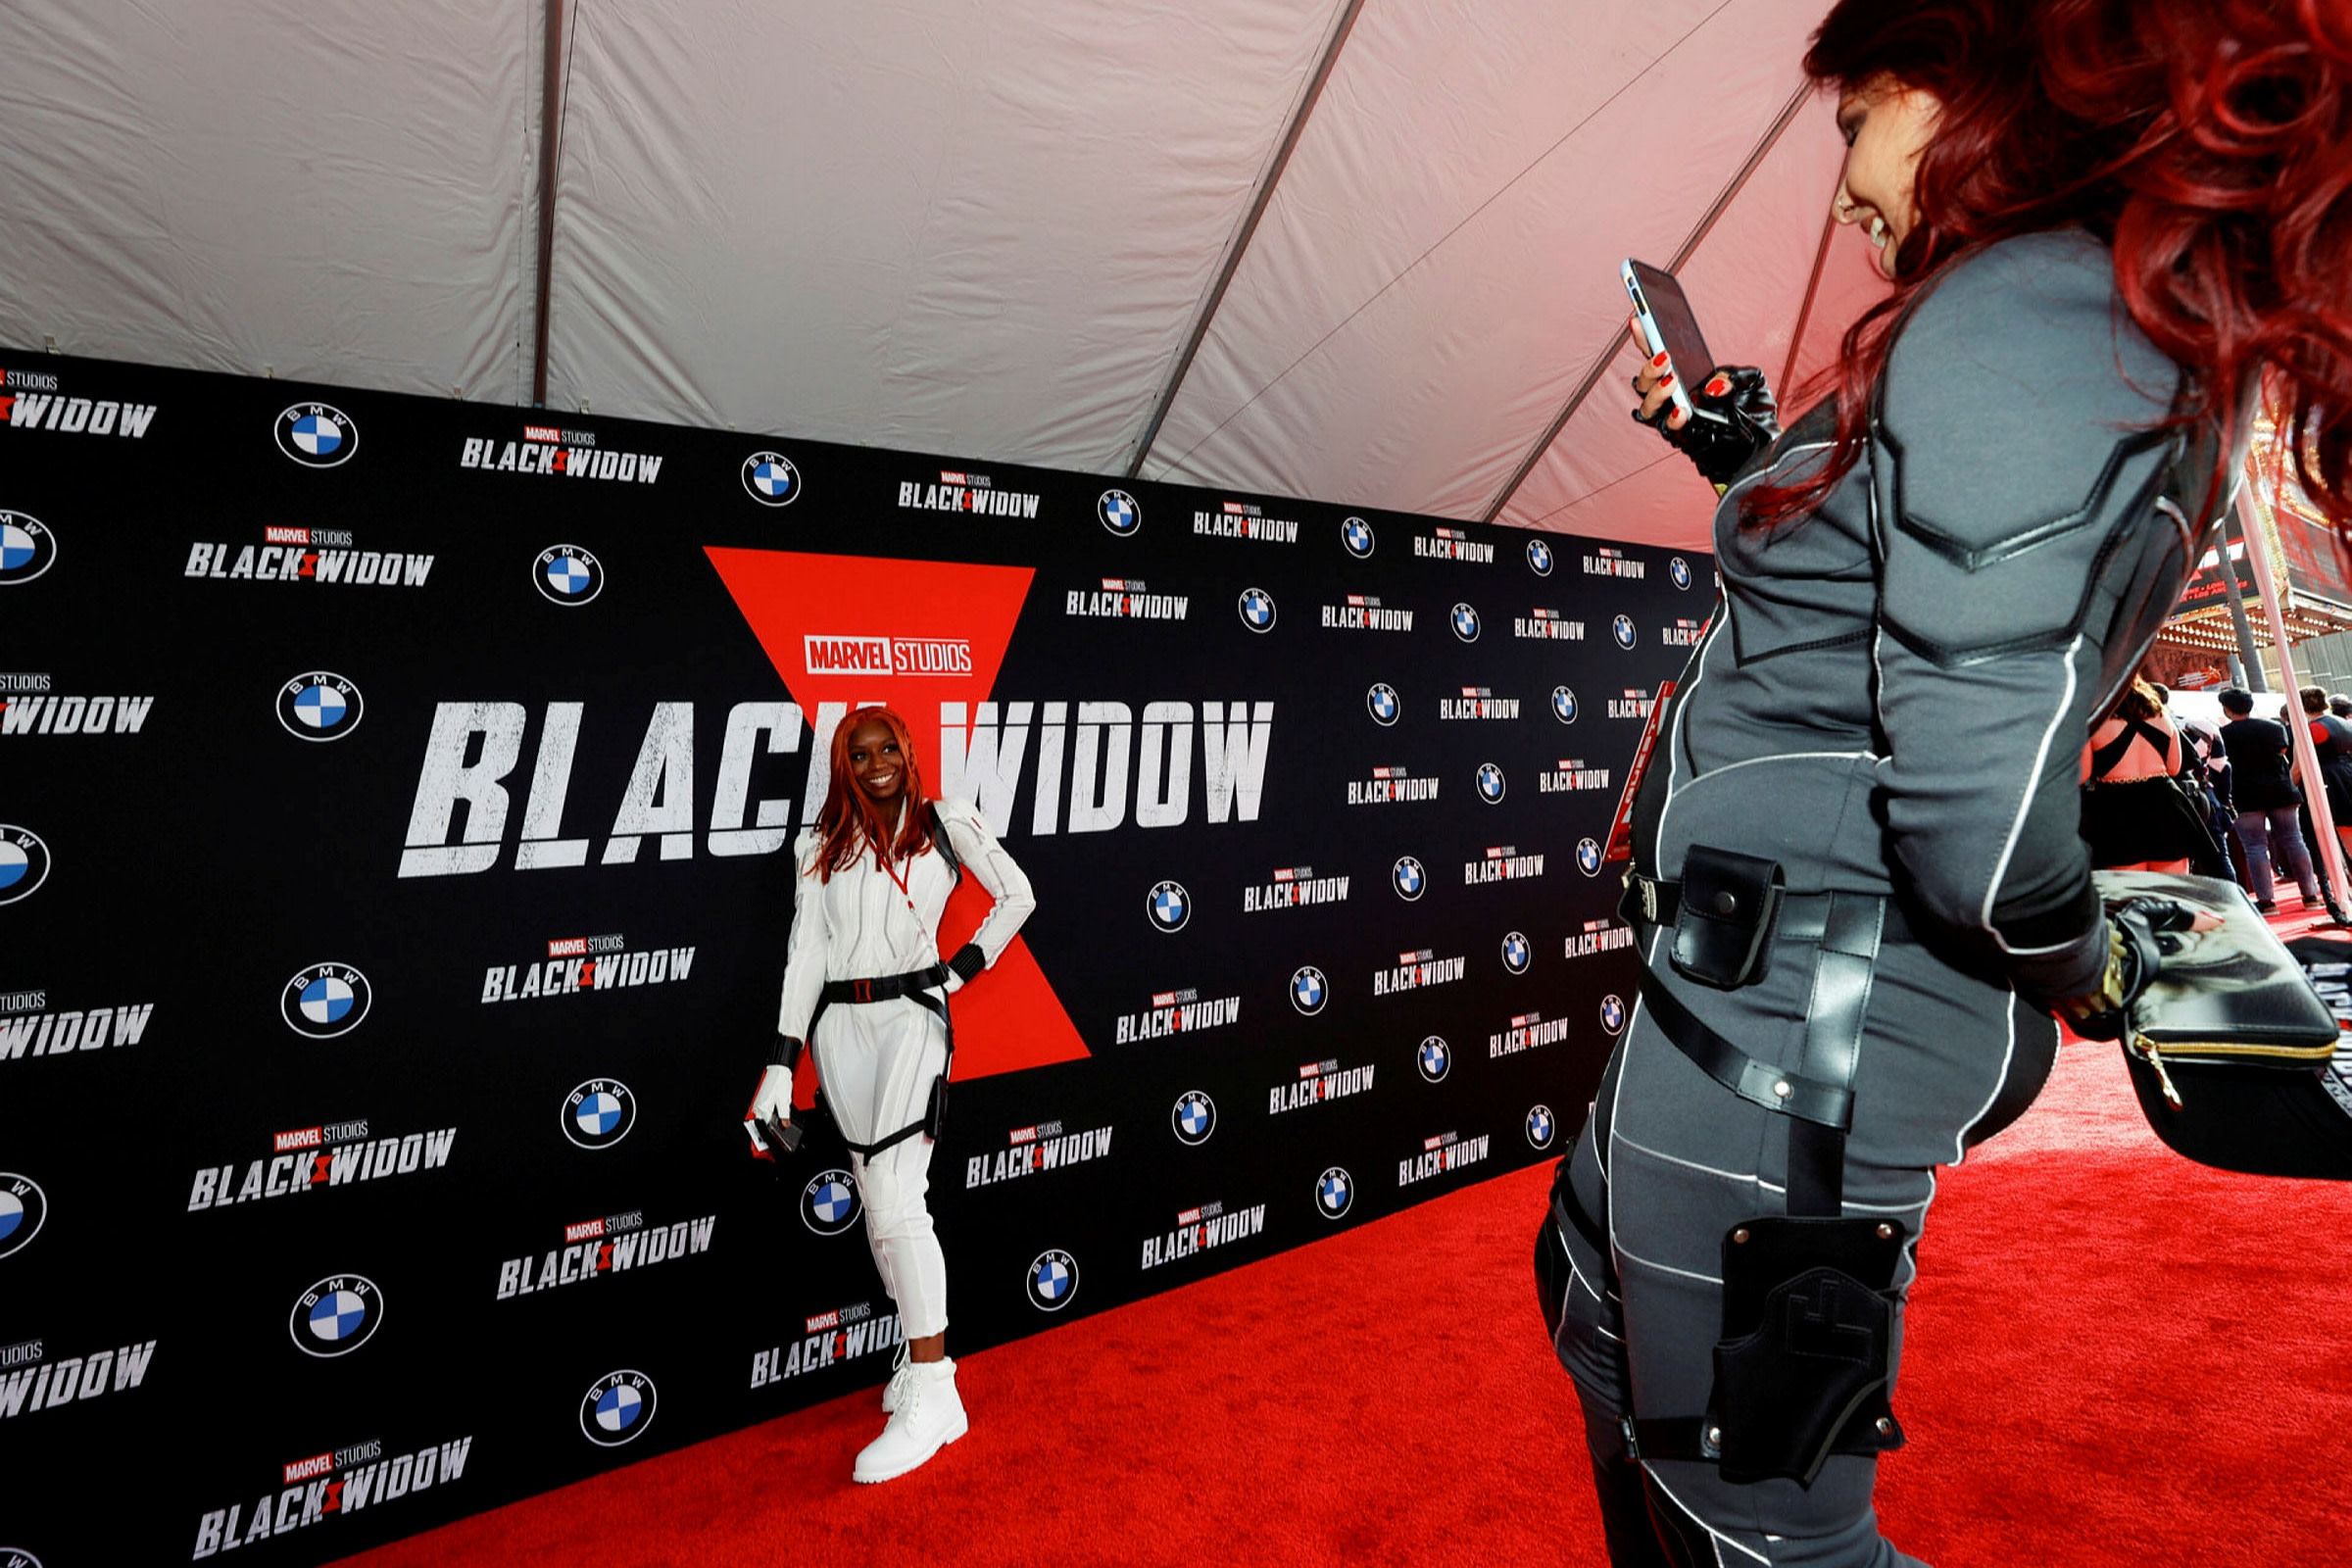 Fans pose at a Black Widow screening in Los Angeles